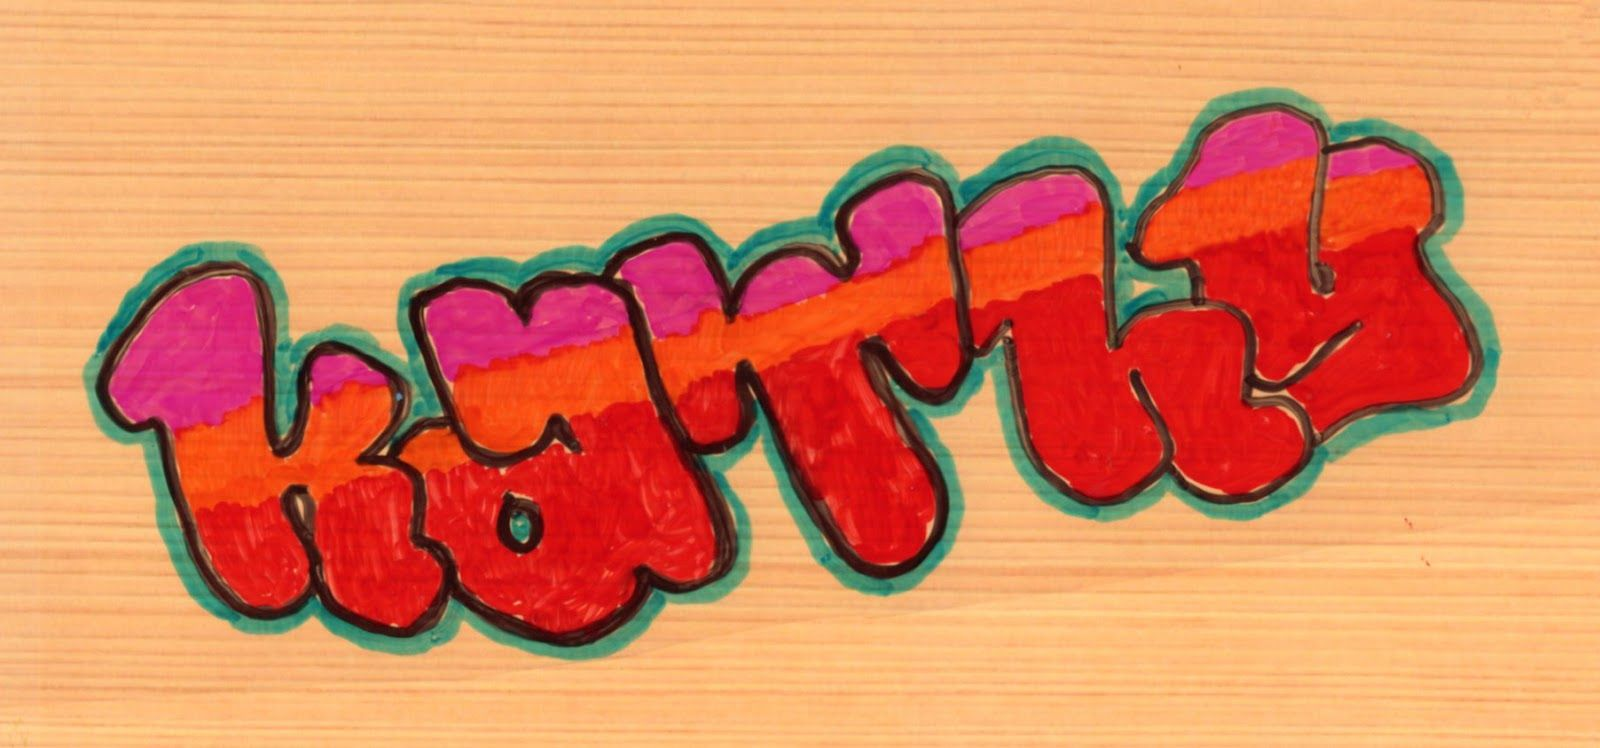 Art Projects For Kids Graffiti Lettering Project